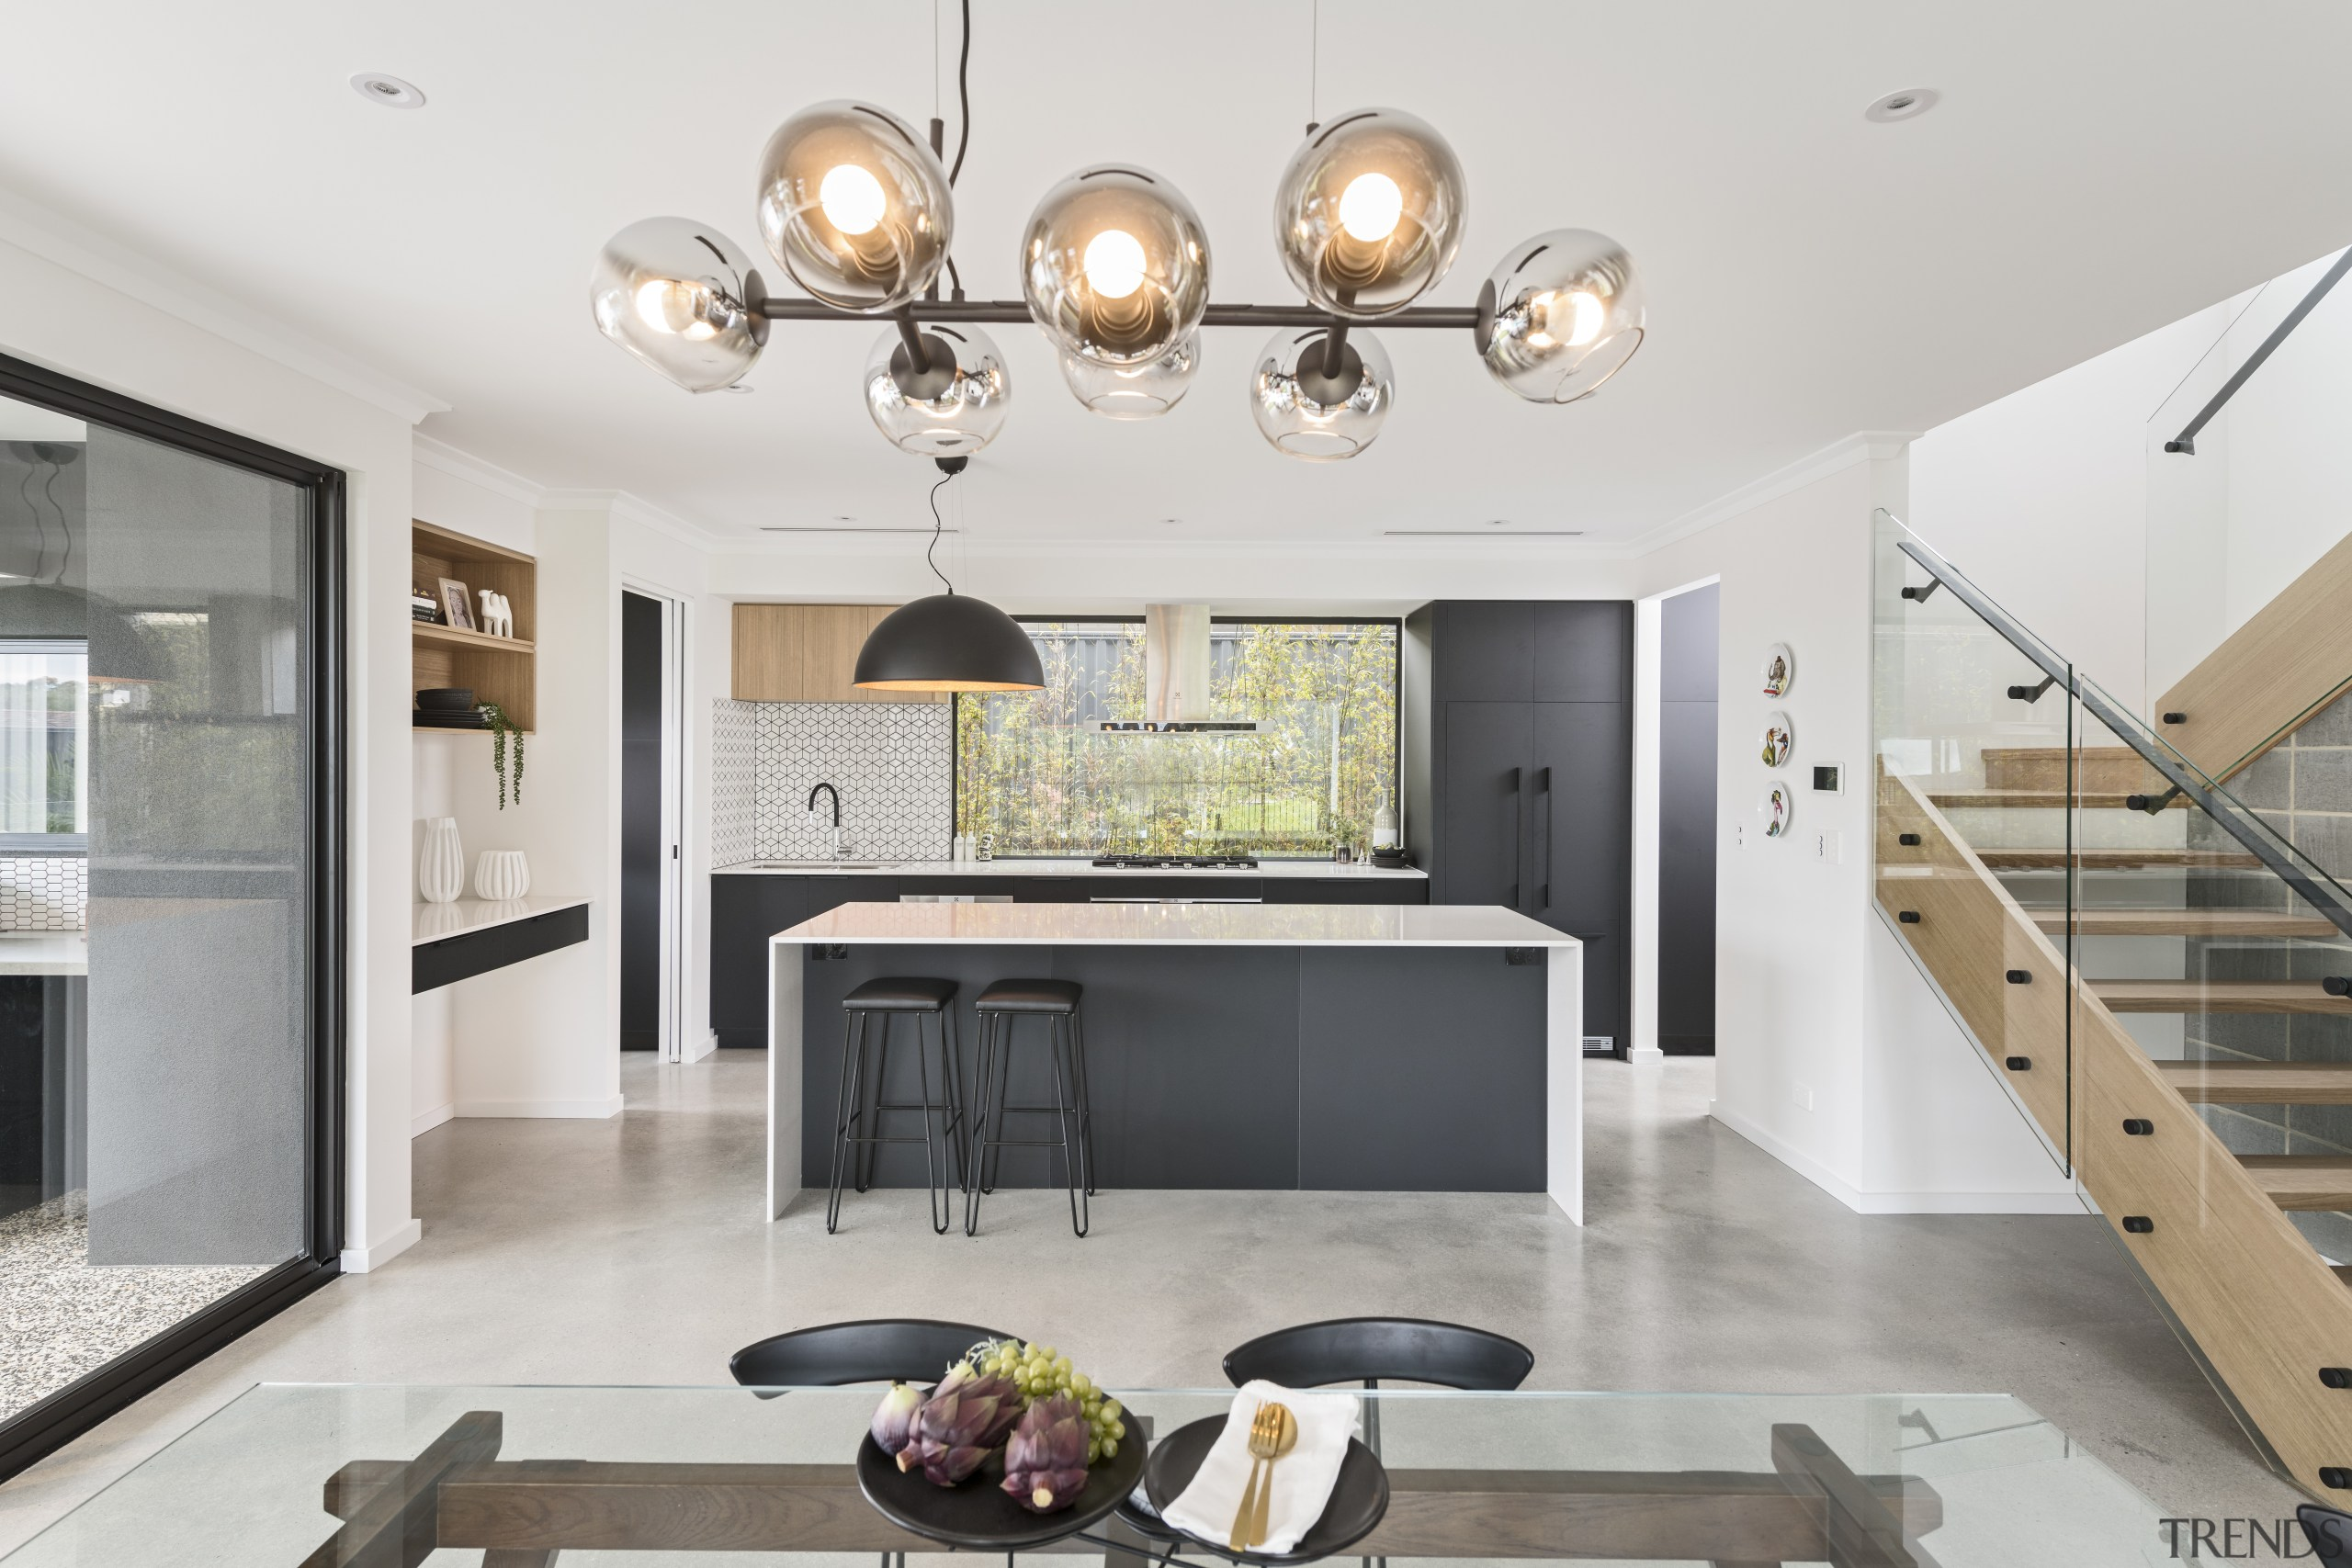 The industrial feel is matched with the polished apartment, architecture, building, cabinetry, ceiling, design, dining room, floor, flooring, furniture, home, house, interior design, light fixture, lighting, living room, loft, property, real estate, room, stairs, table, tile, wall, yellow, white, gray